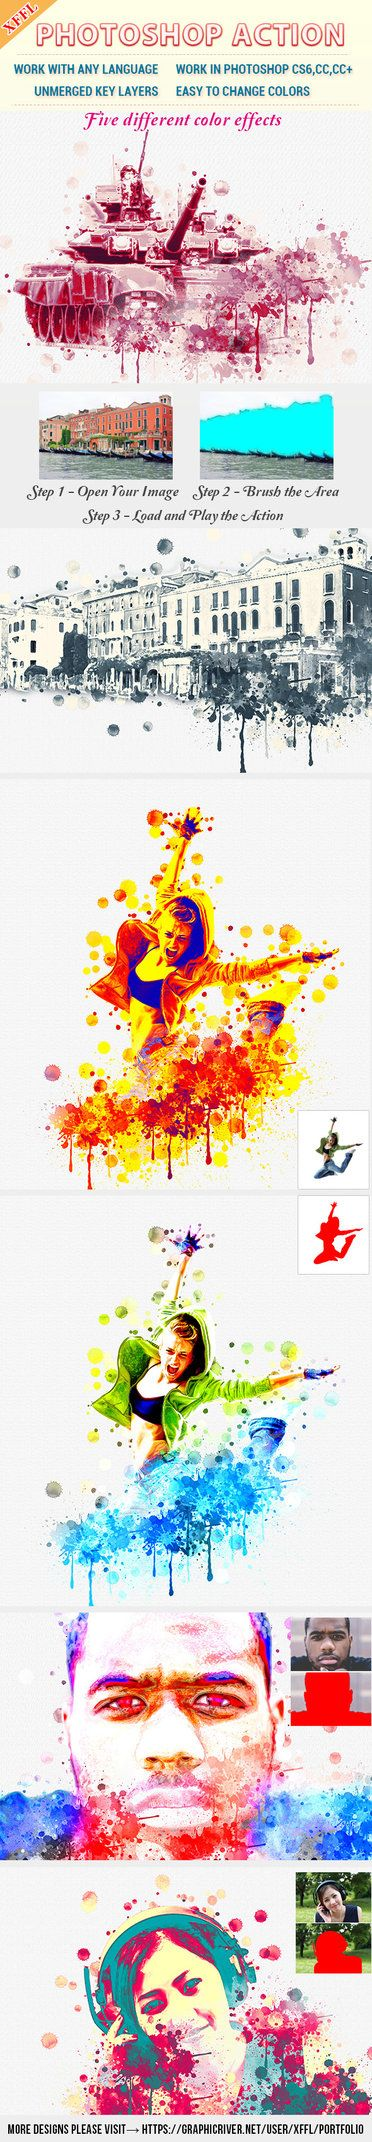 DOWNLOAD:     goo.gl/HQpPcCDiscolour Watercolor Photoshop ActionFiles FeaturesPhotoshop ActionWork in Photoshop CS6 or HigherWork with any LanguageUnmerged key L...